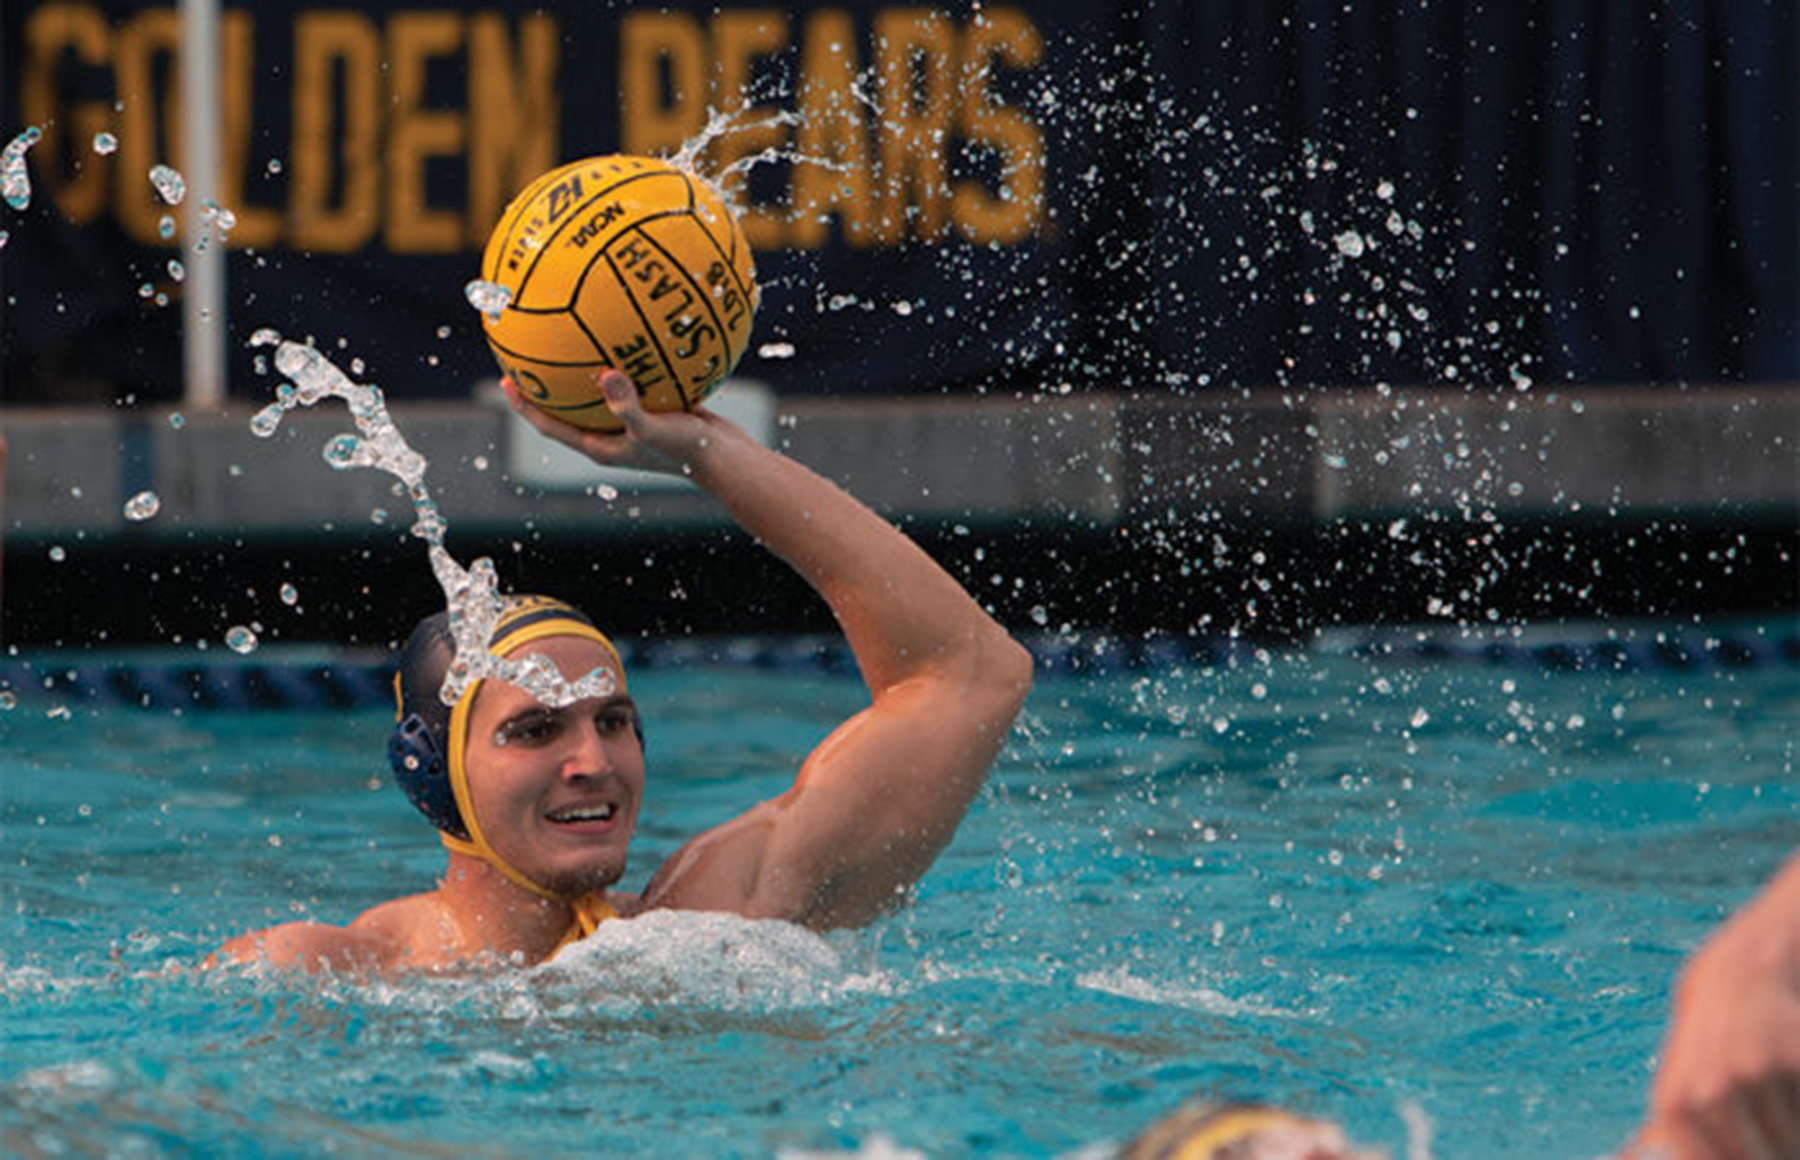 photo of a Cal Golden Bears water polo player